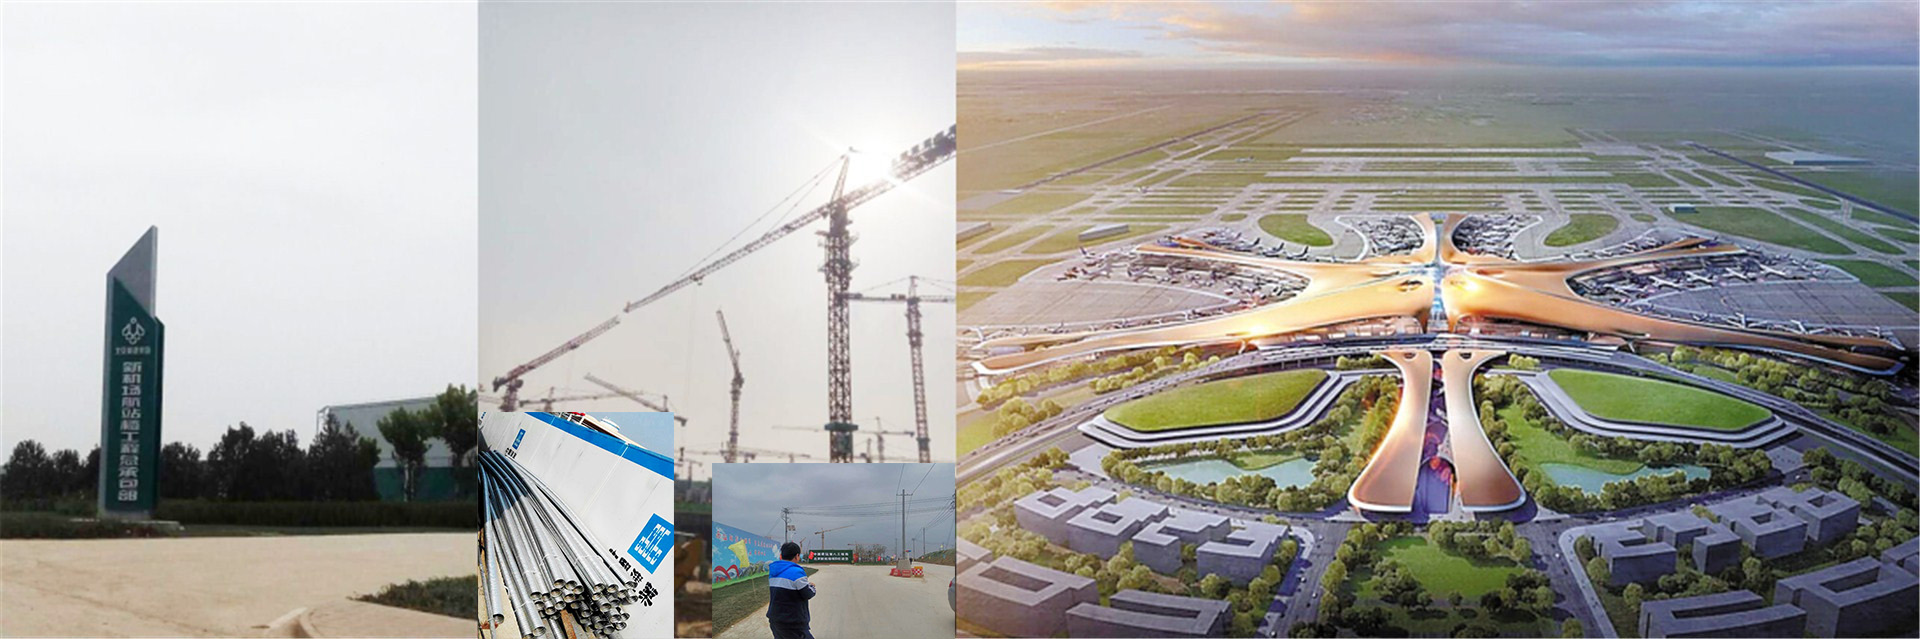 THE NEW BEIJING AIRPORT IN DAXING DISTRIC